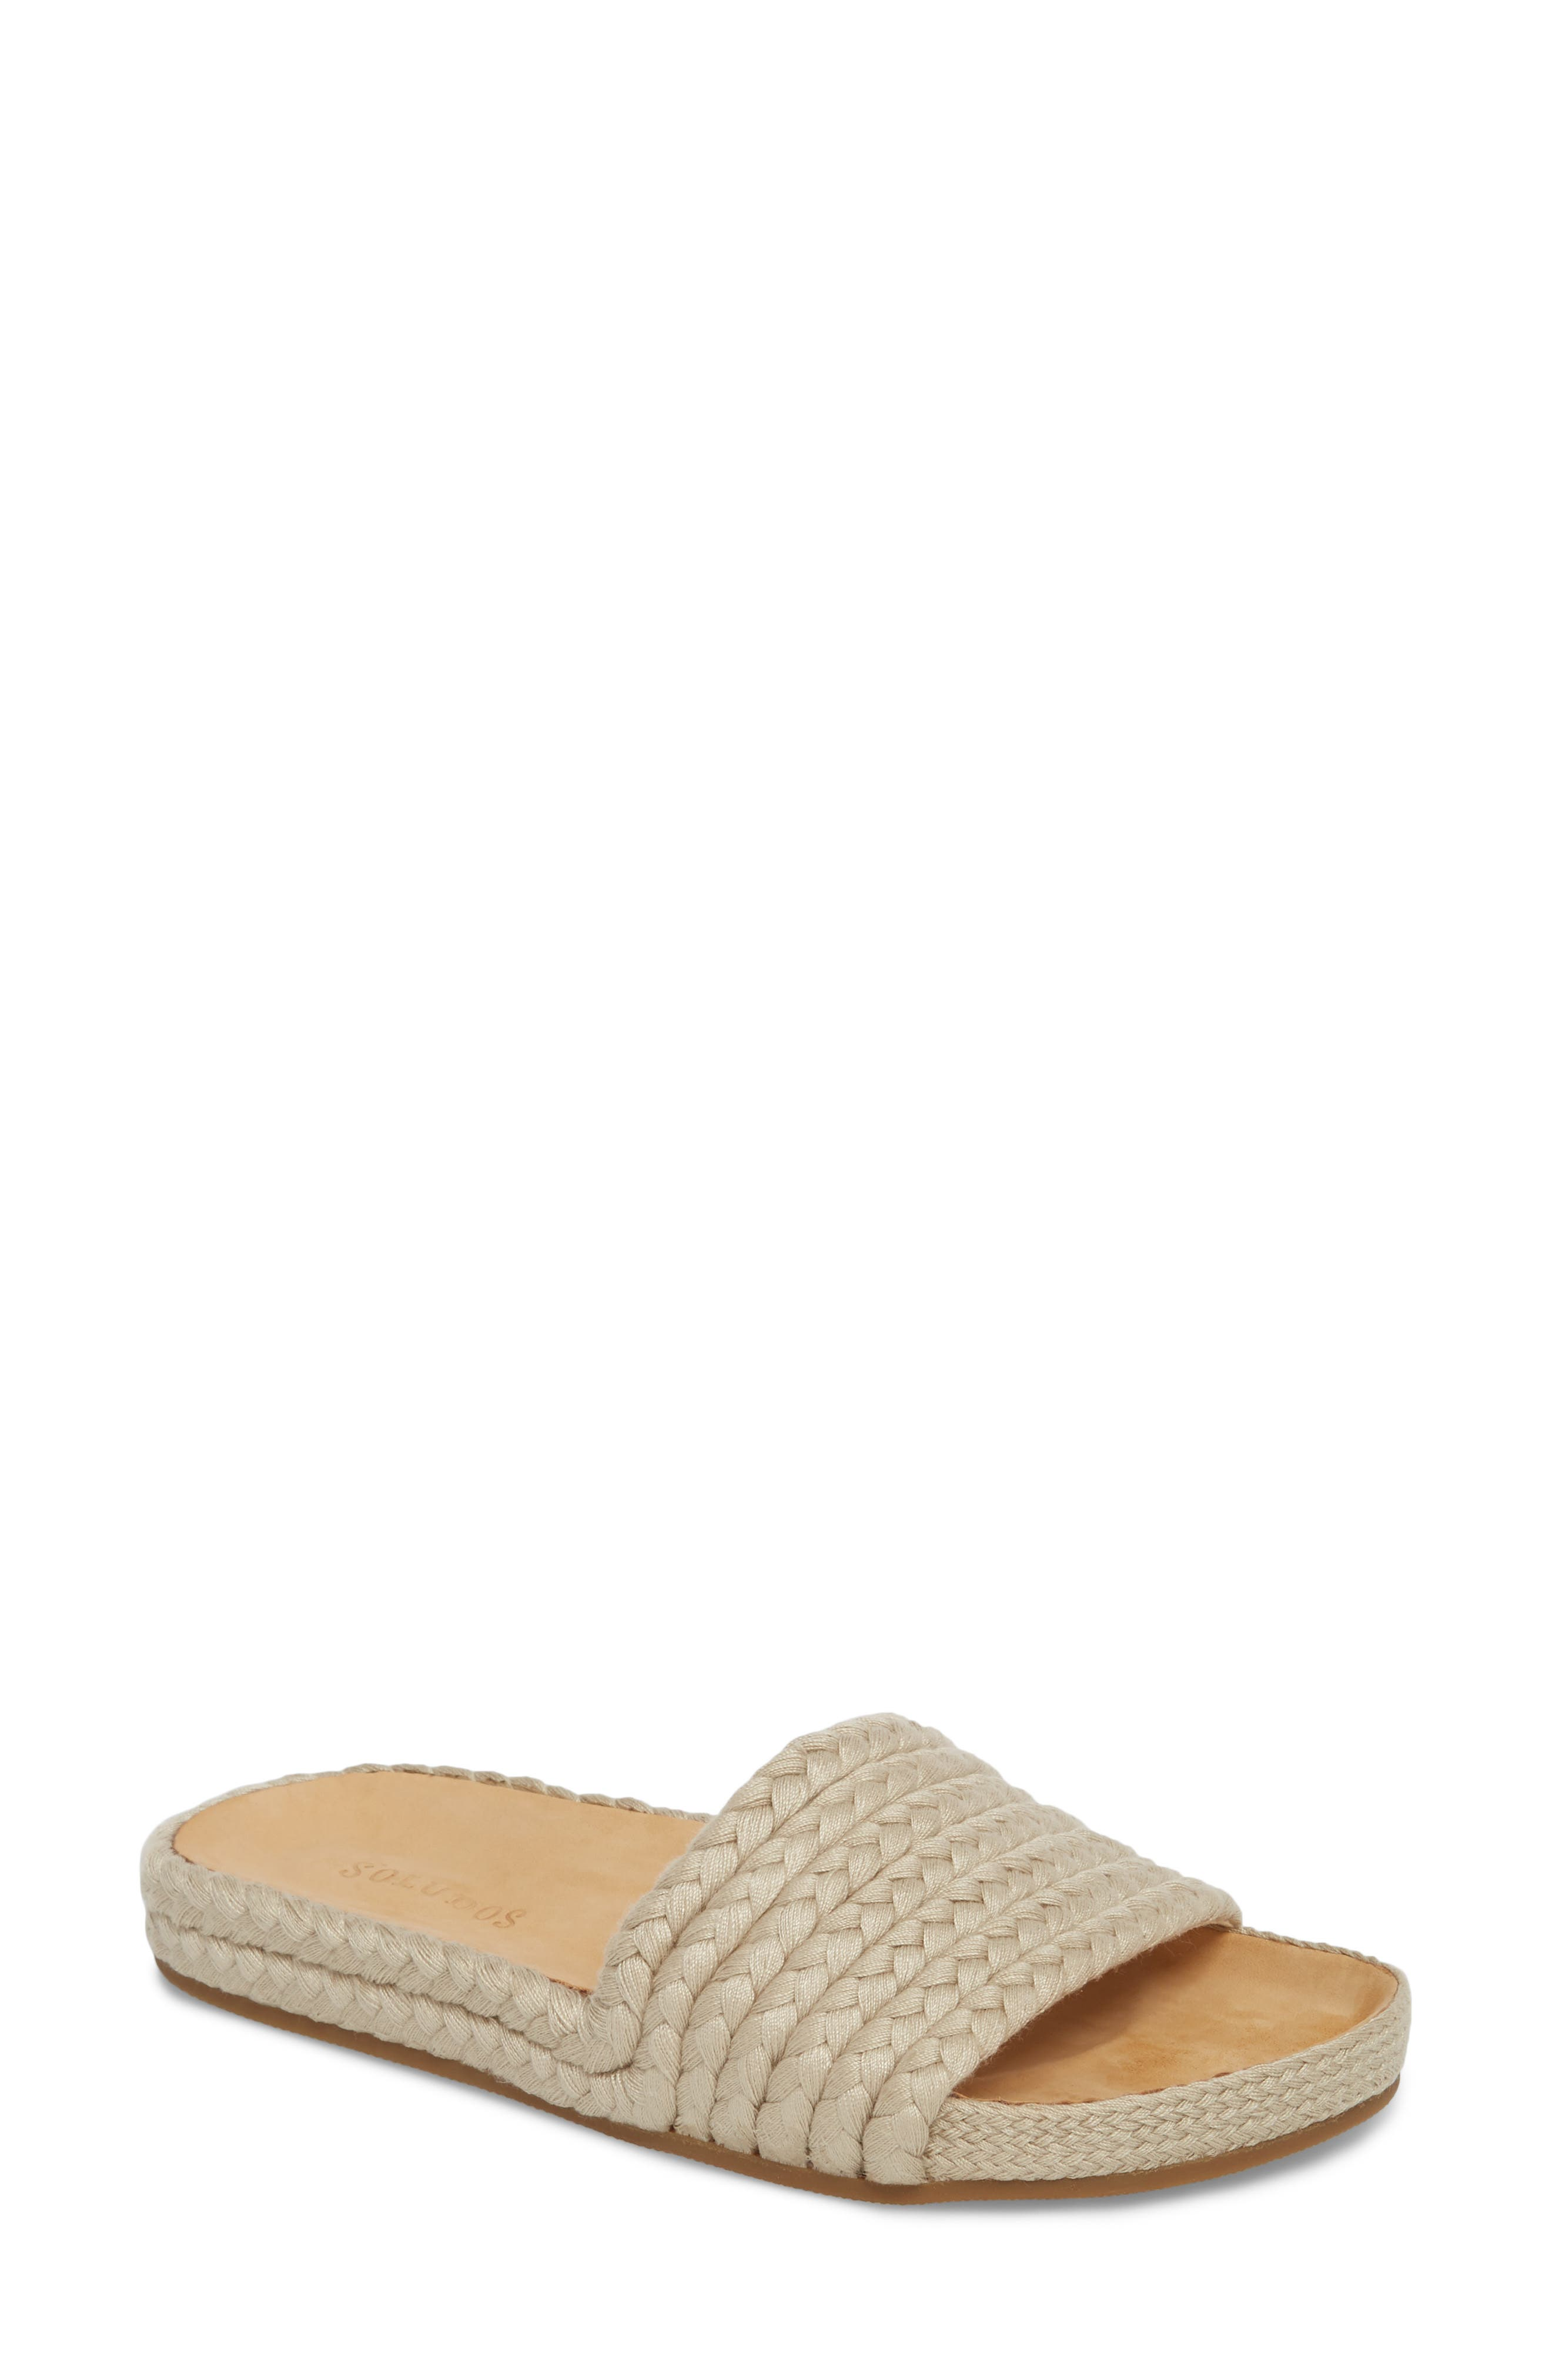 Braided Slide Sandal,                         Main,                         color, Natural Fabric